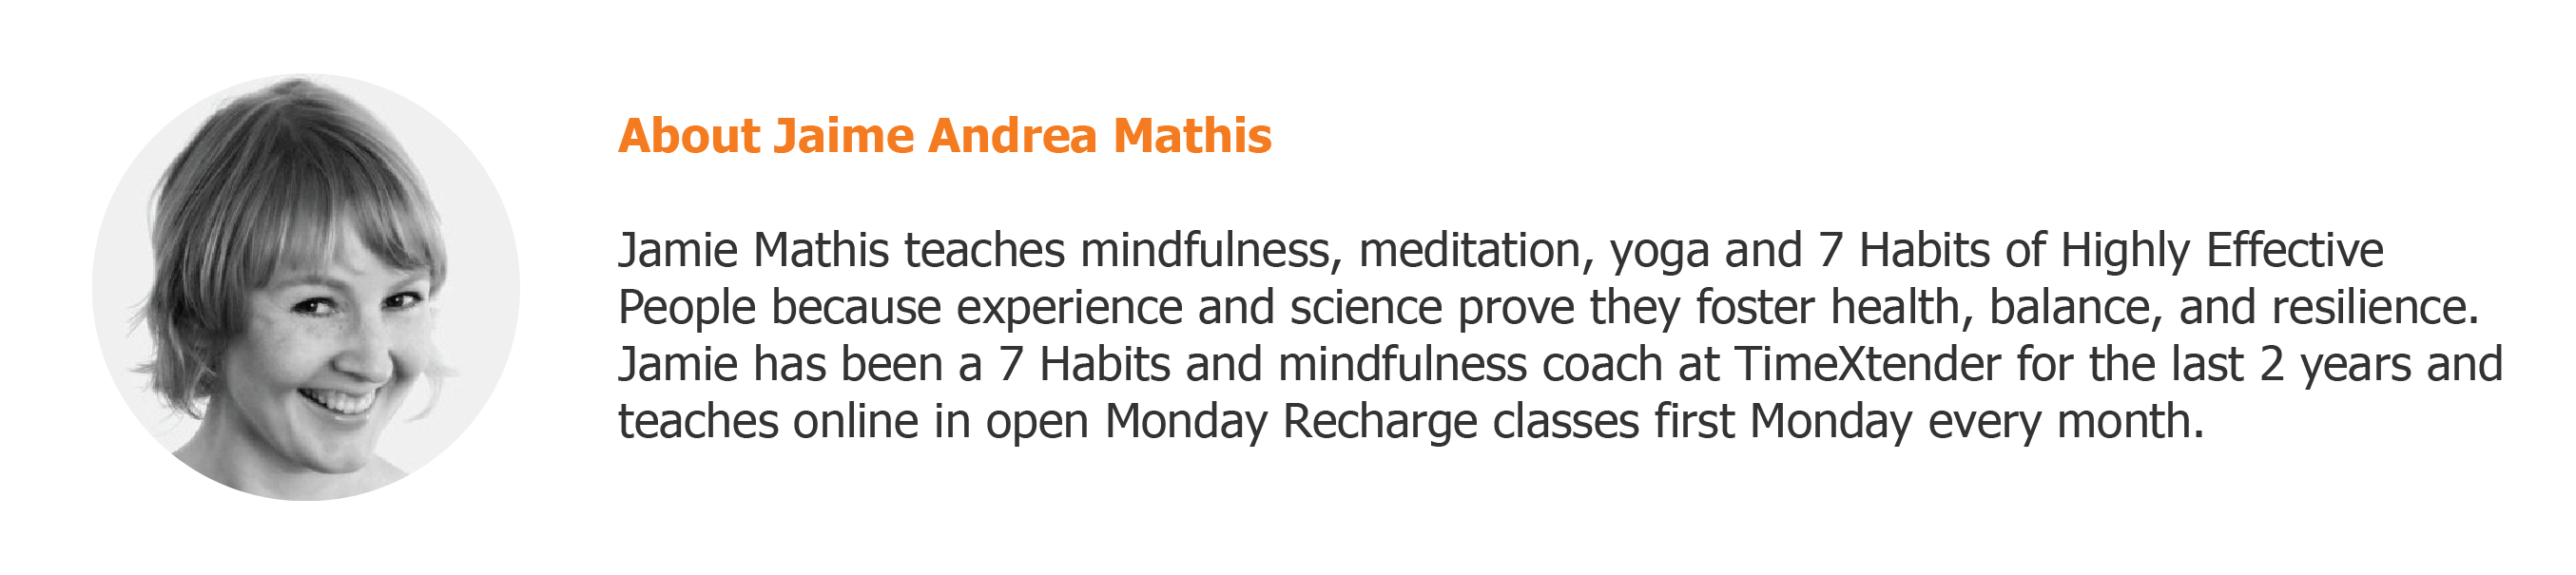 Jamie Mathis - 7 habits facilitator and mindfulness coach at TimeXtender